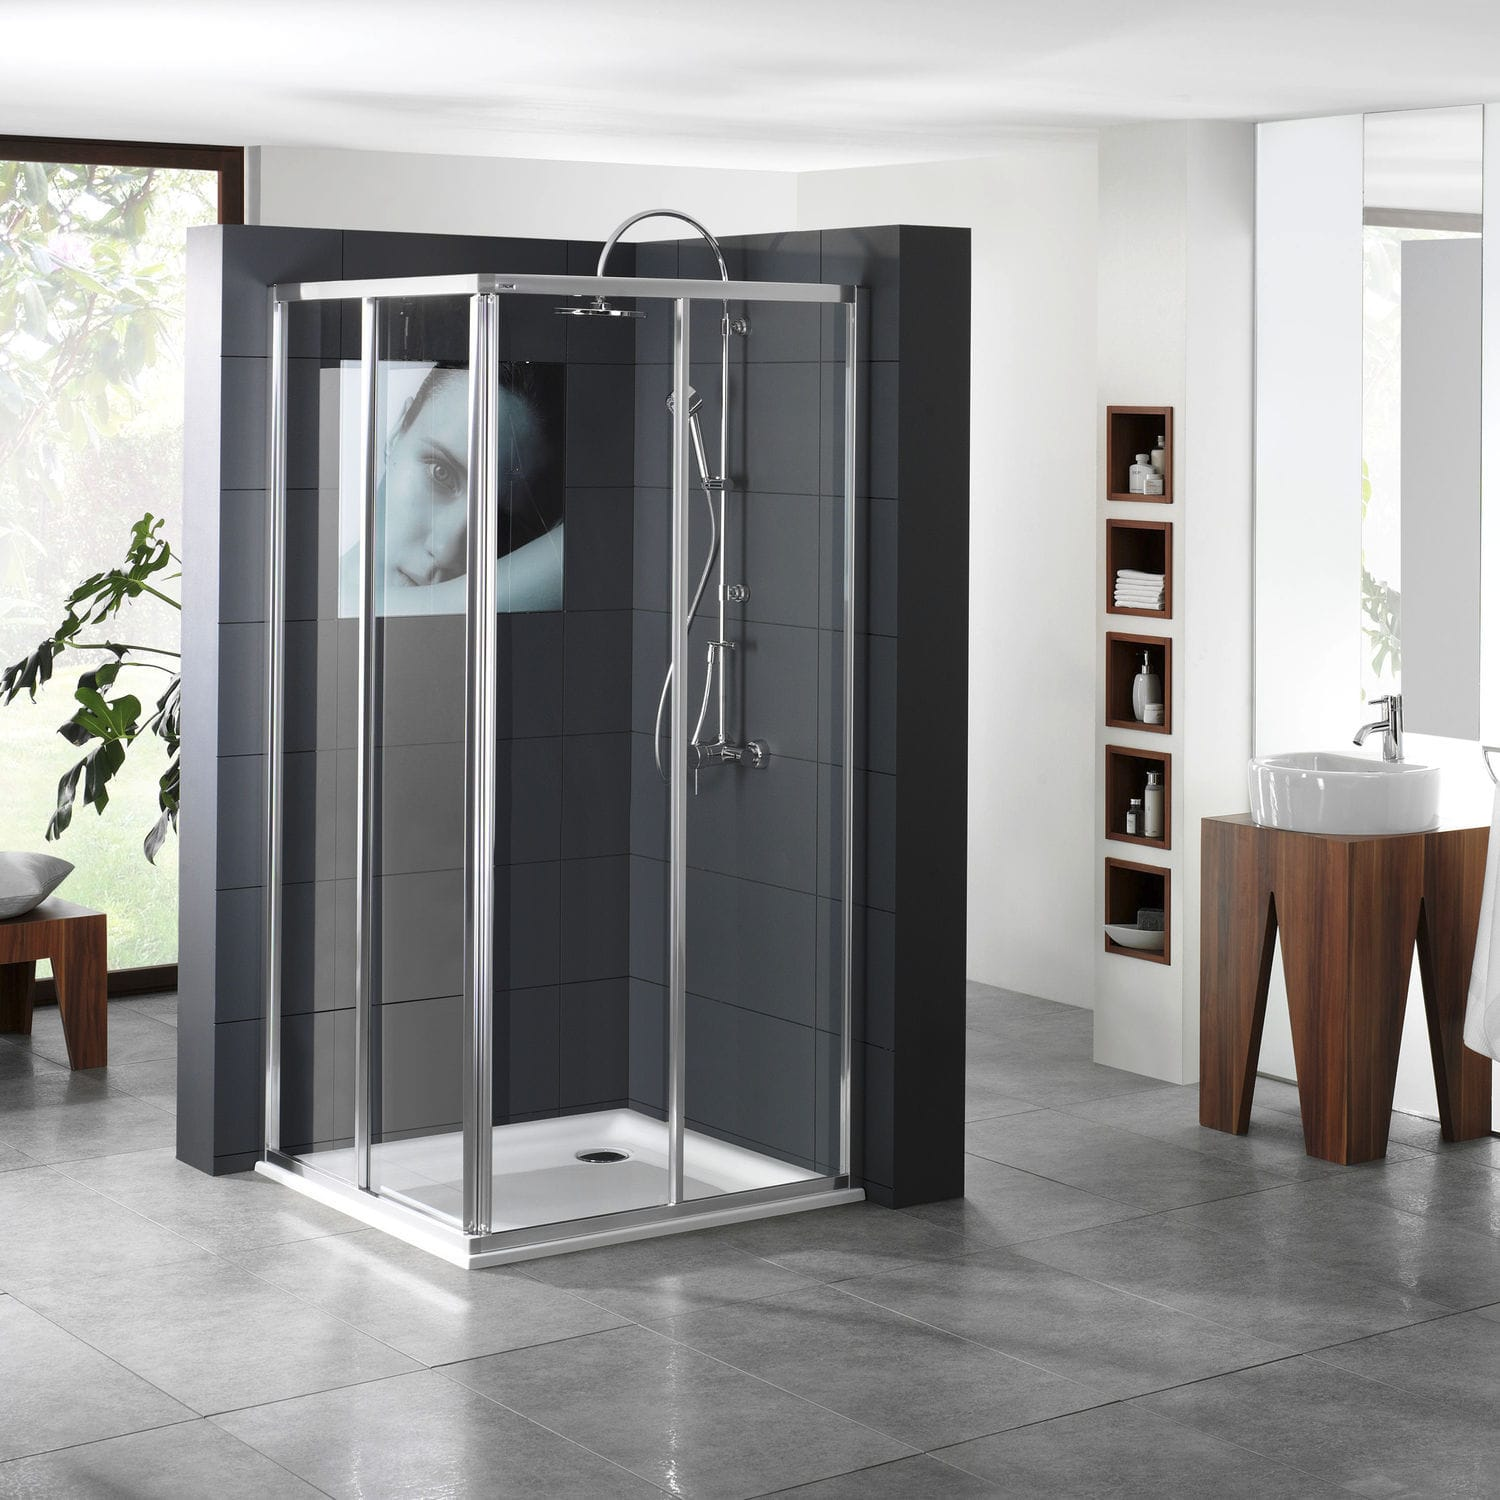 Glass shower cubicle / corner / with sliding door - DRIVE 1.0 ...